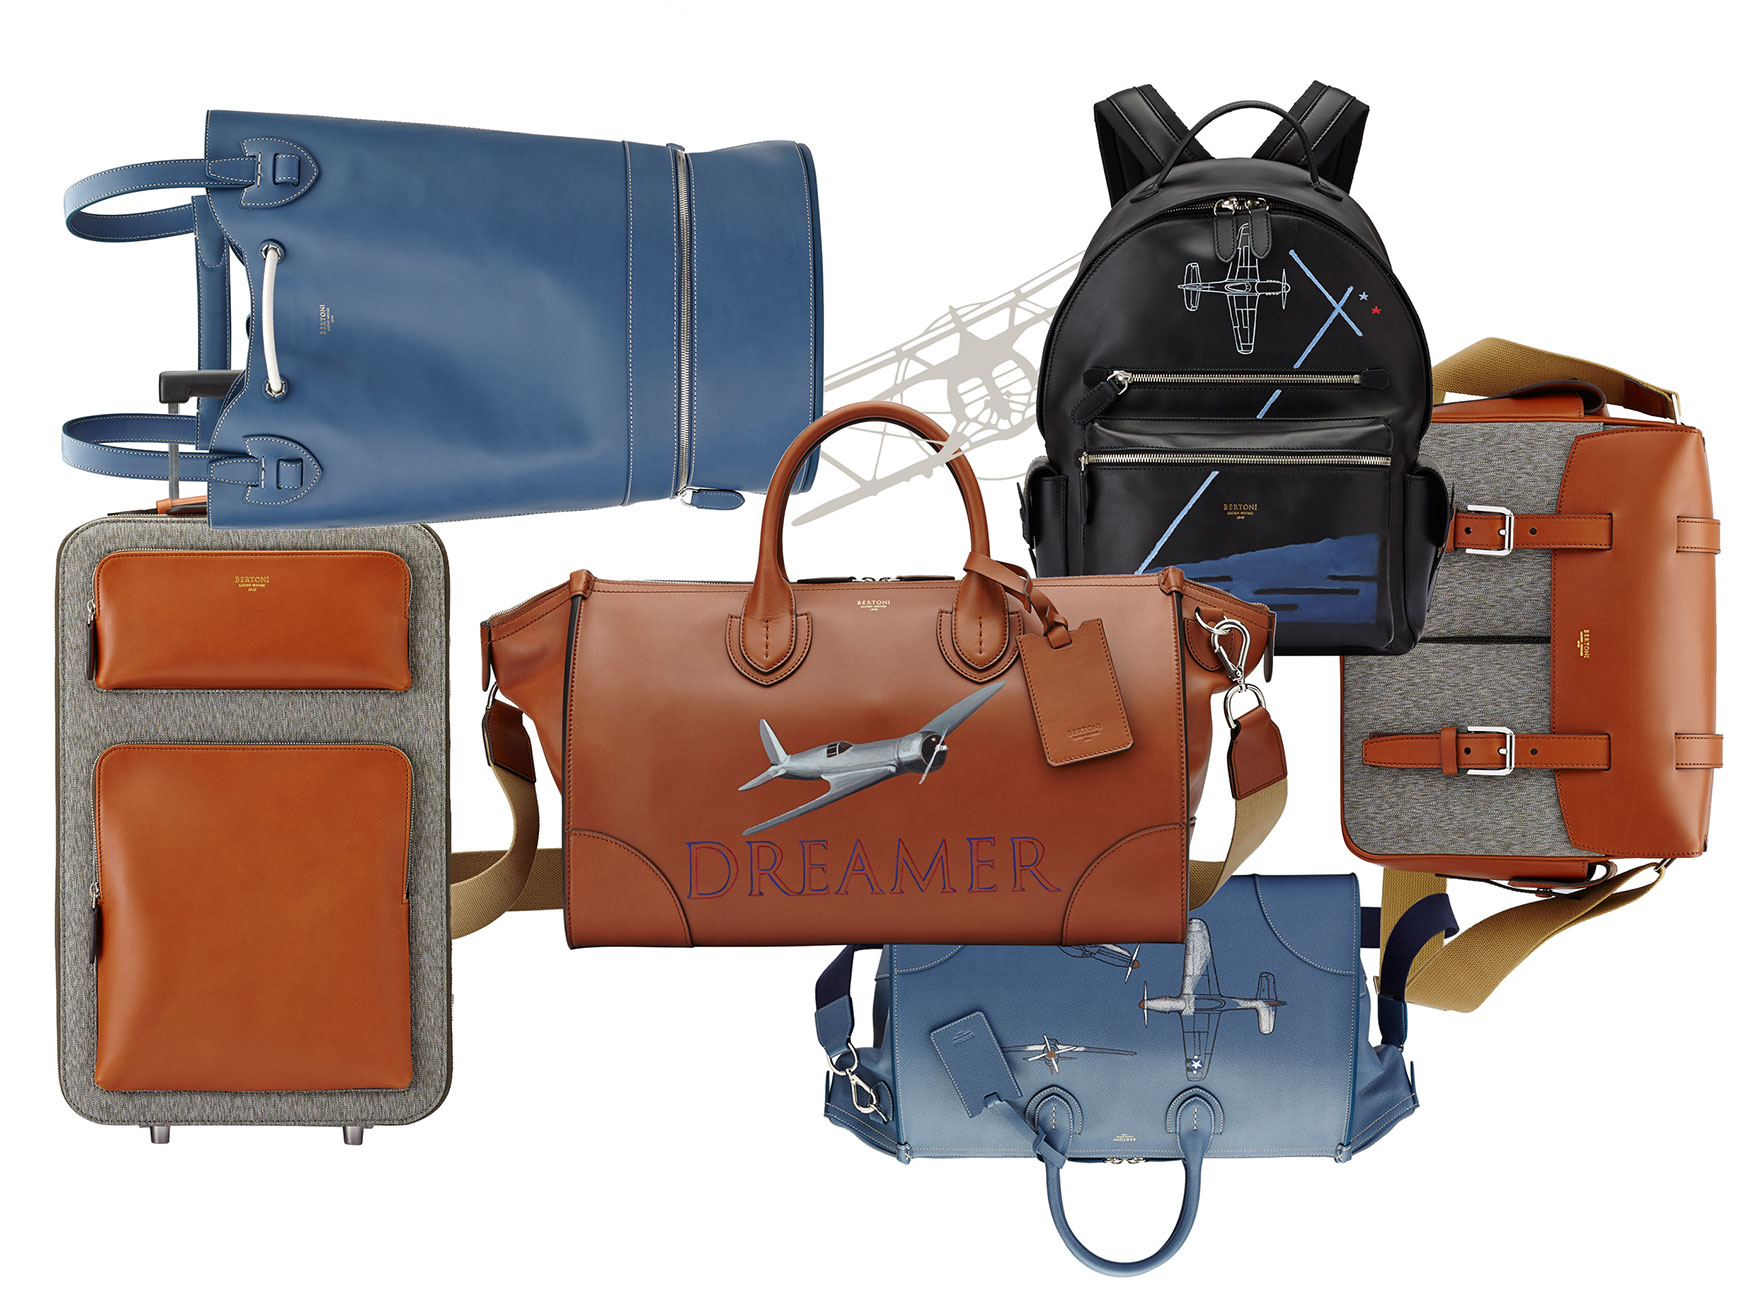 Bertoni 1949 and the American Dream